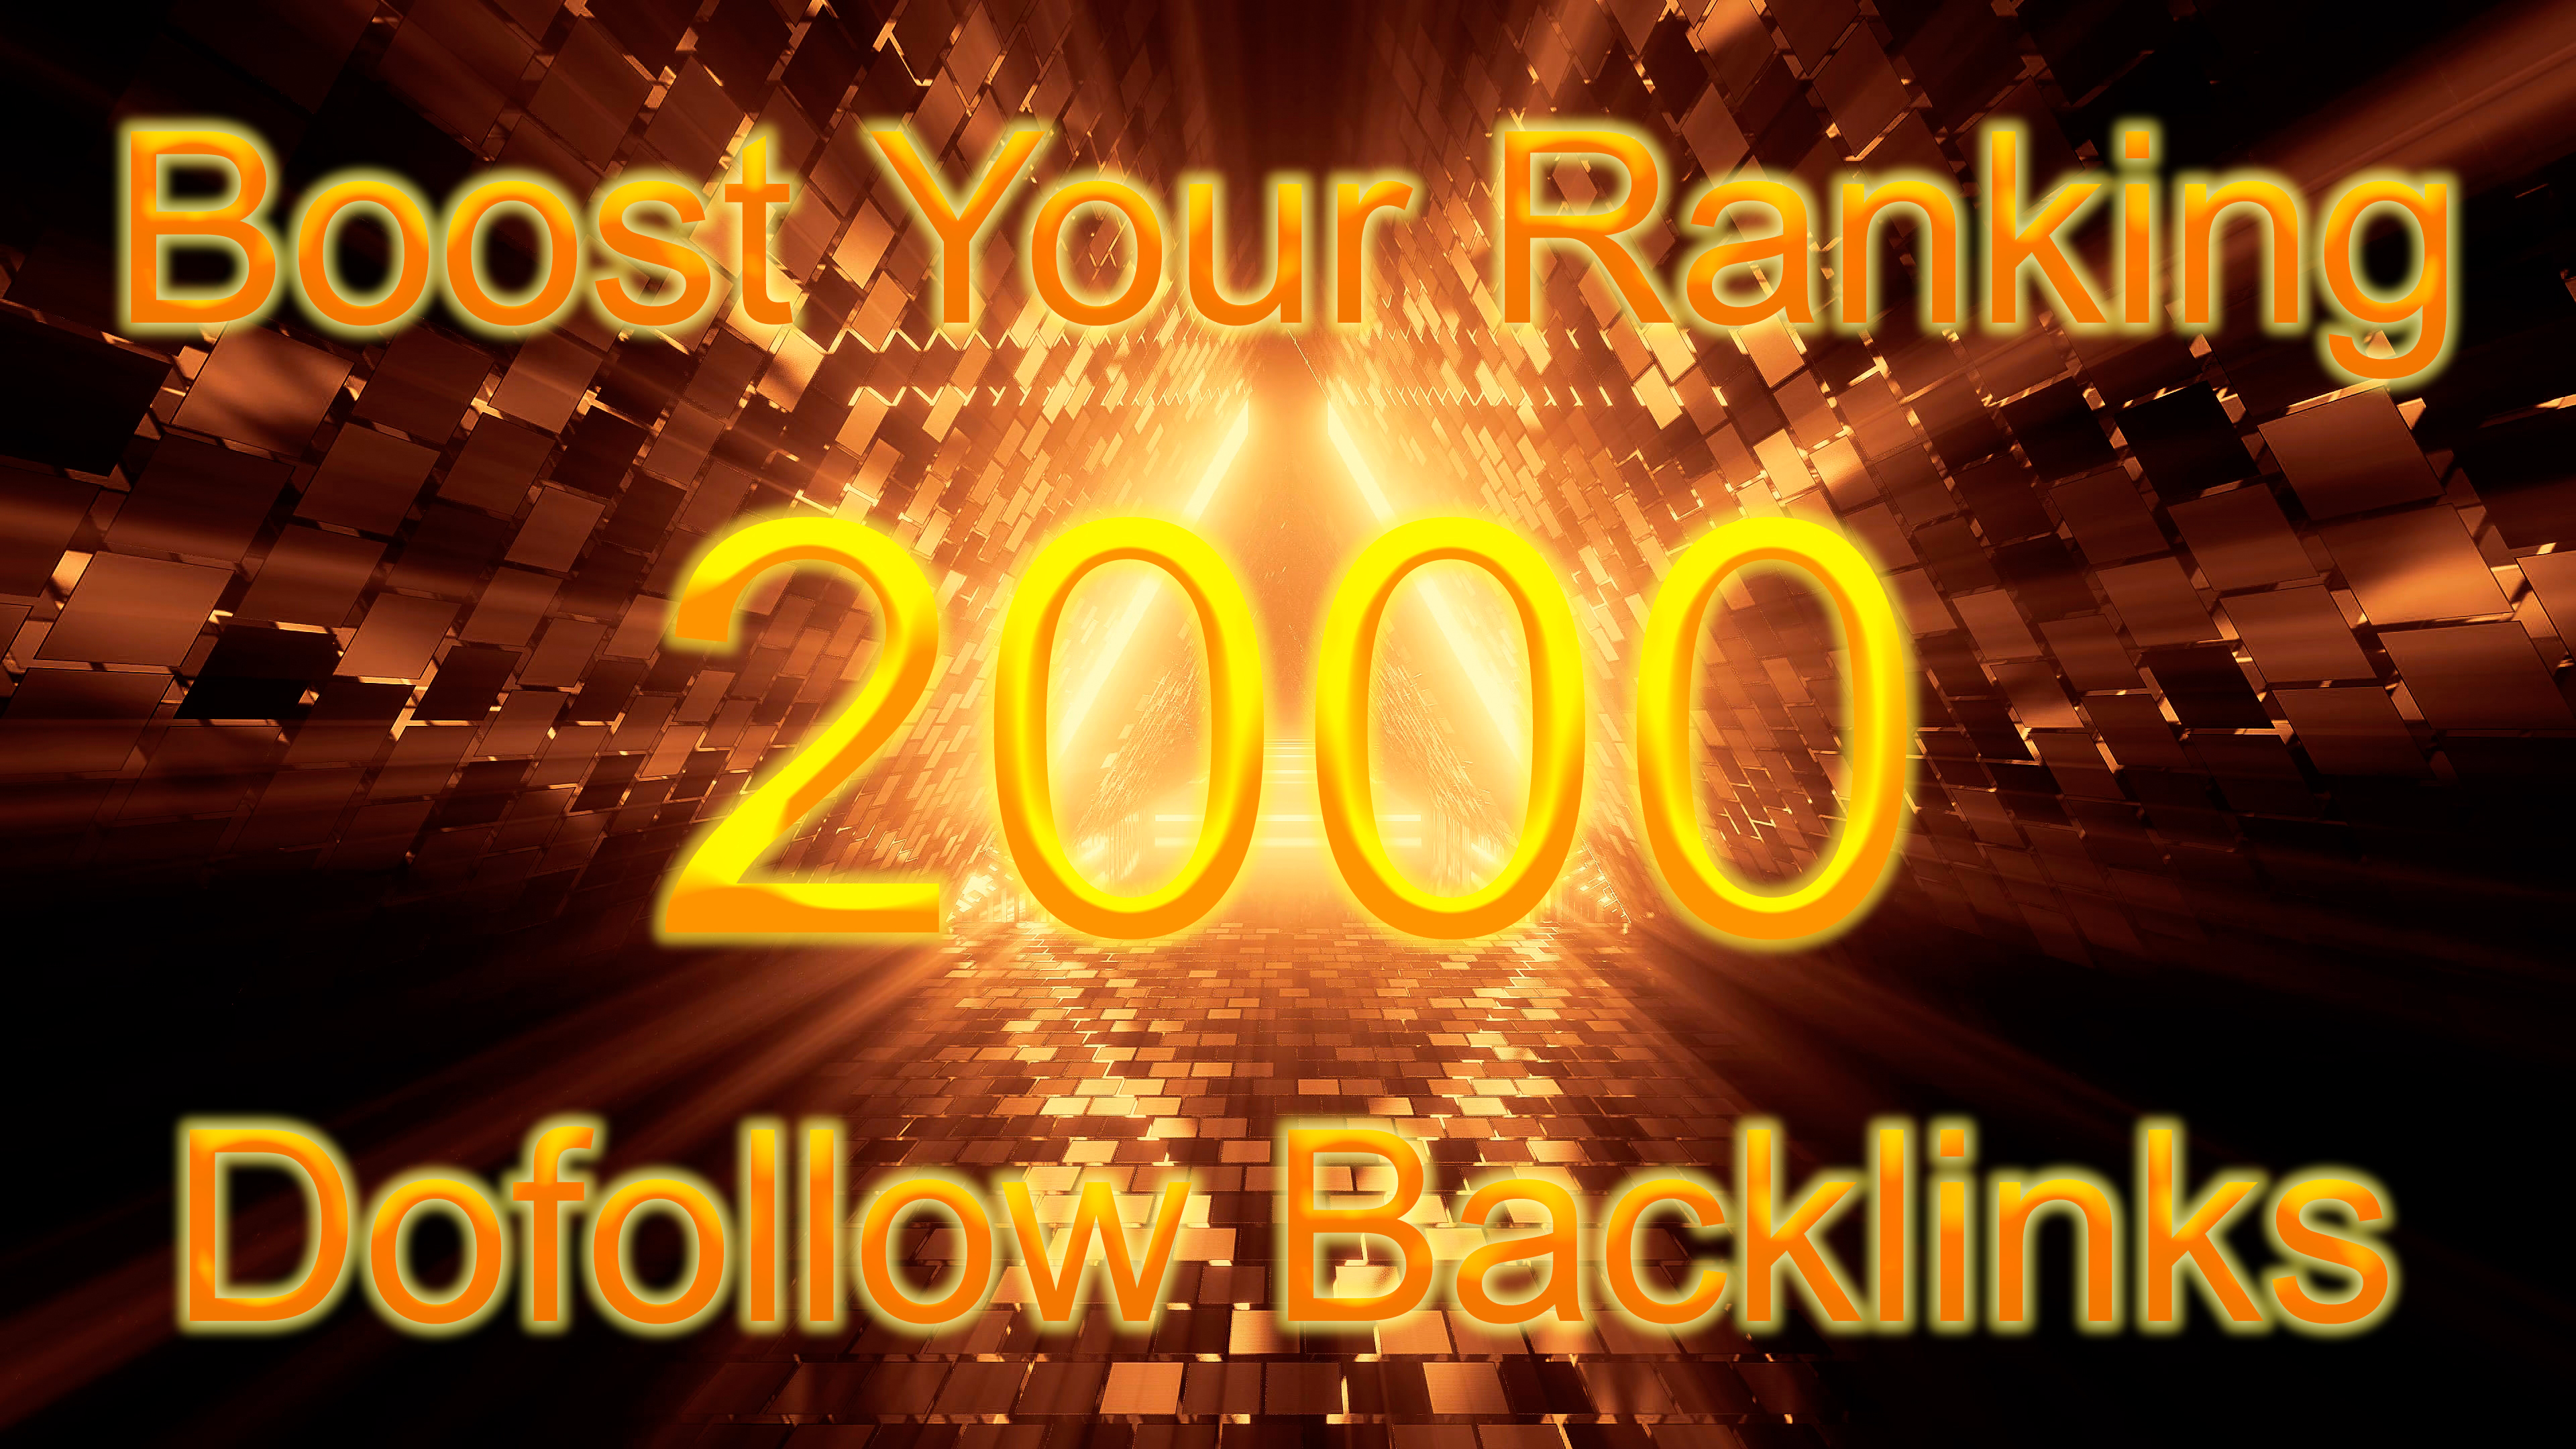 Boost your ranking with my 2000 Dofollow Backlinks With high DA/PA